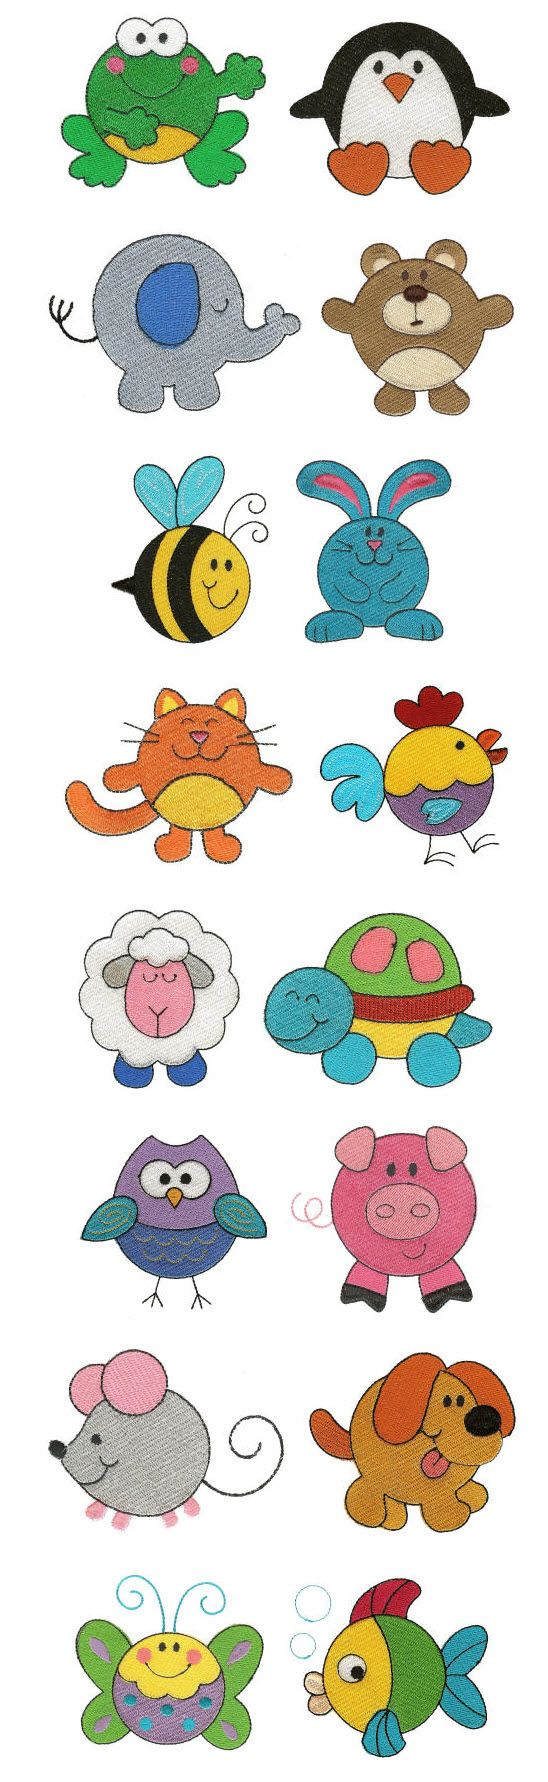 Delightful for Felt Inspirations!  Embroidery Designs | Machine Embroidery Designs | Round Up The Critters Filled